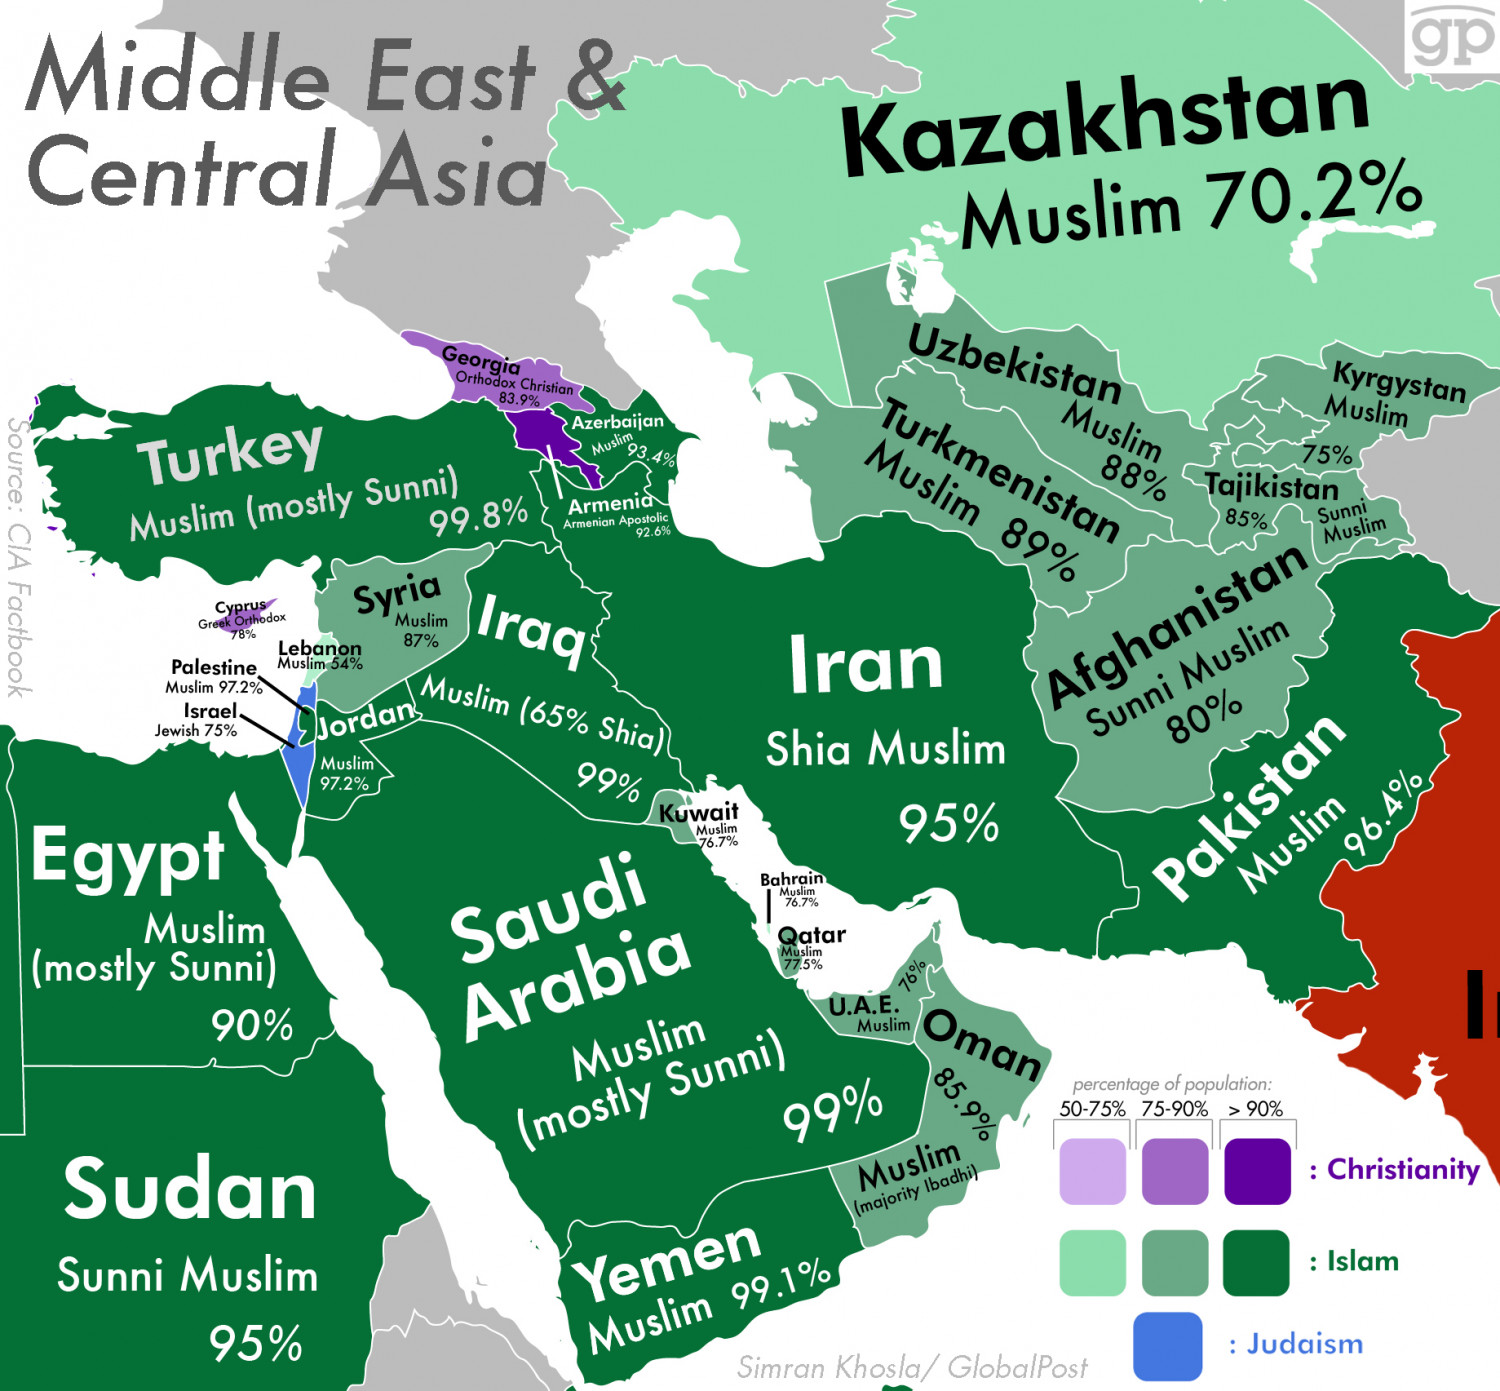 Most Religious Places: Middle East & Central Asia Infographic